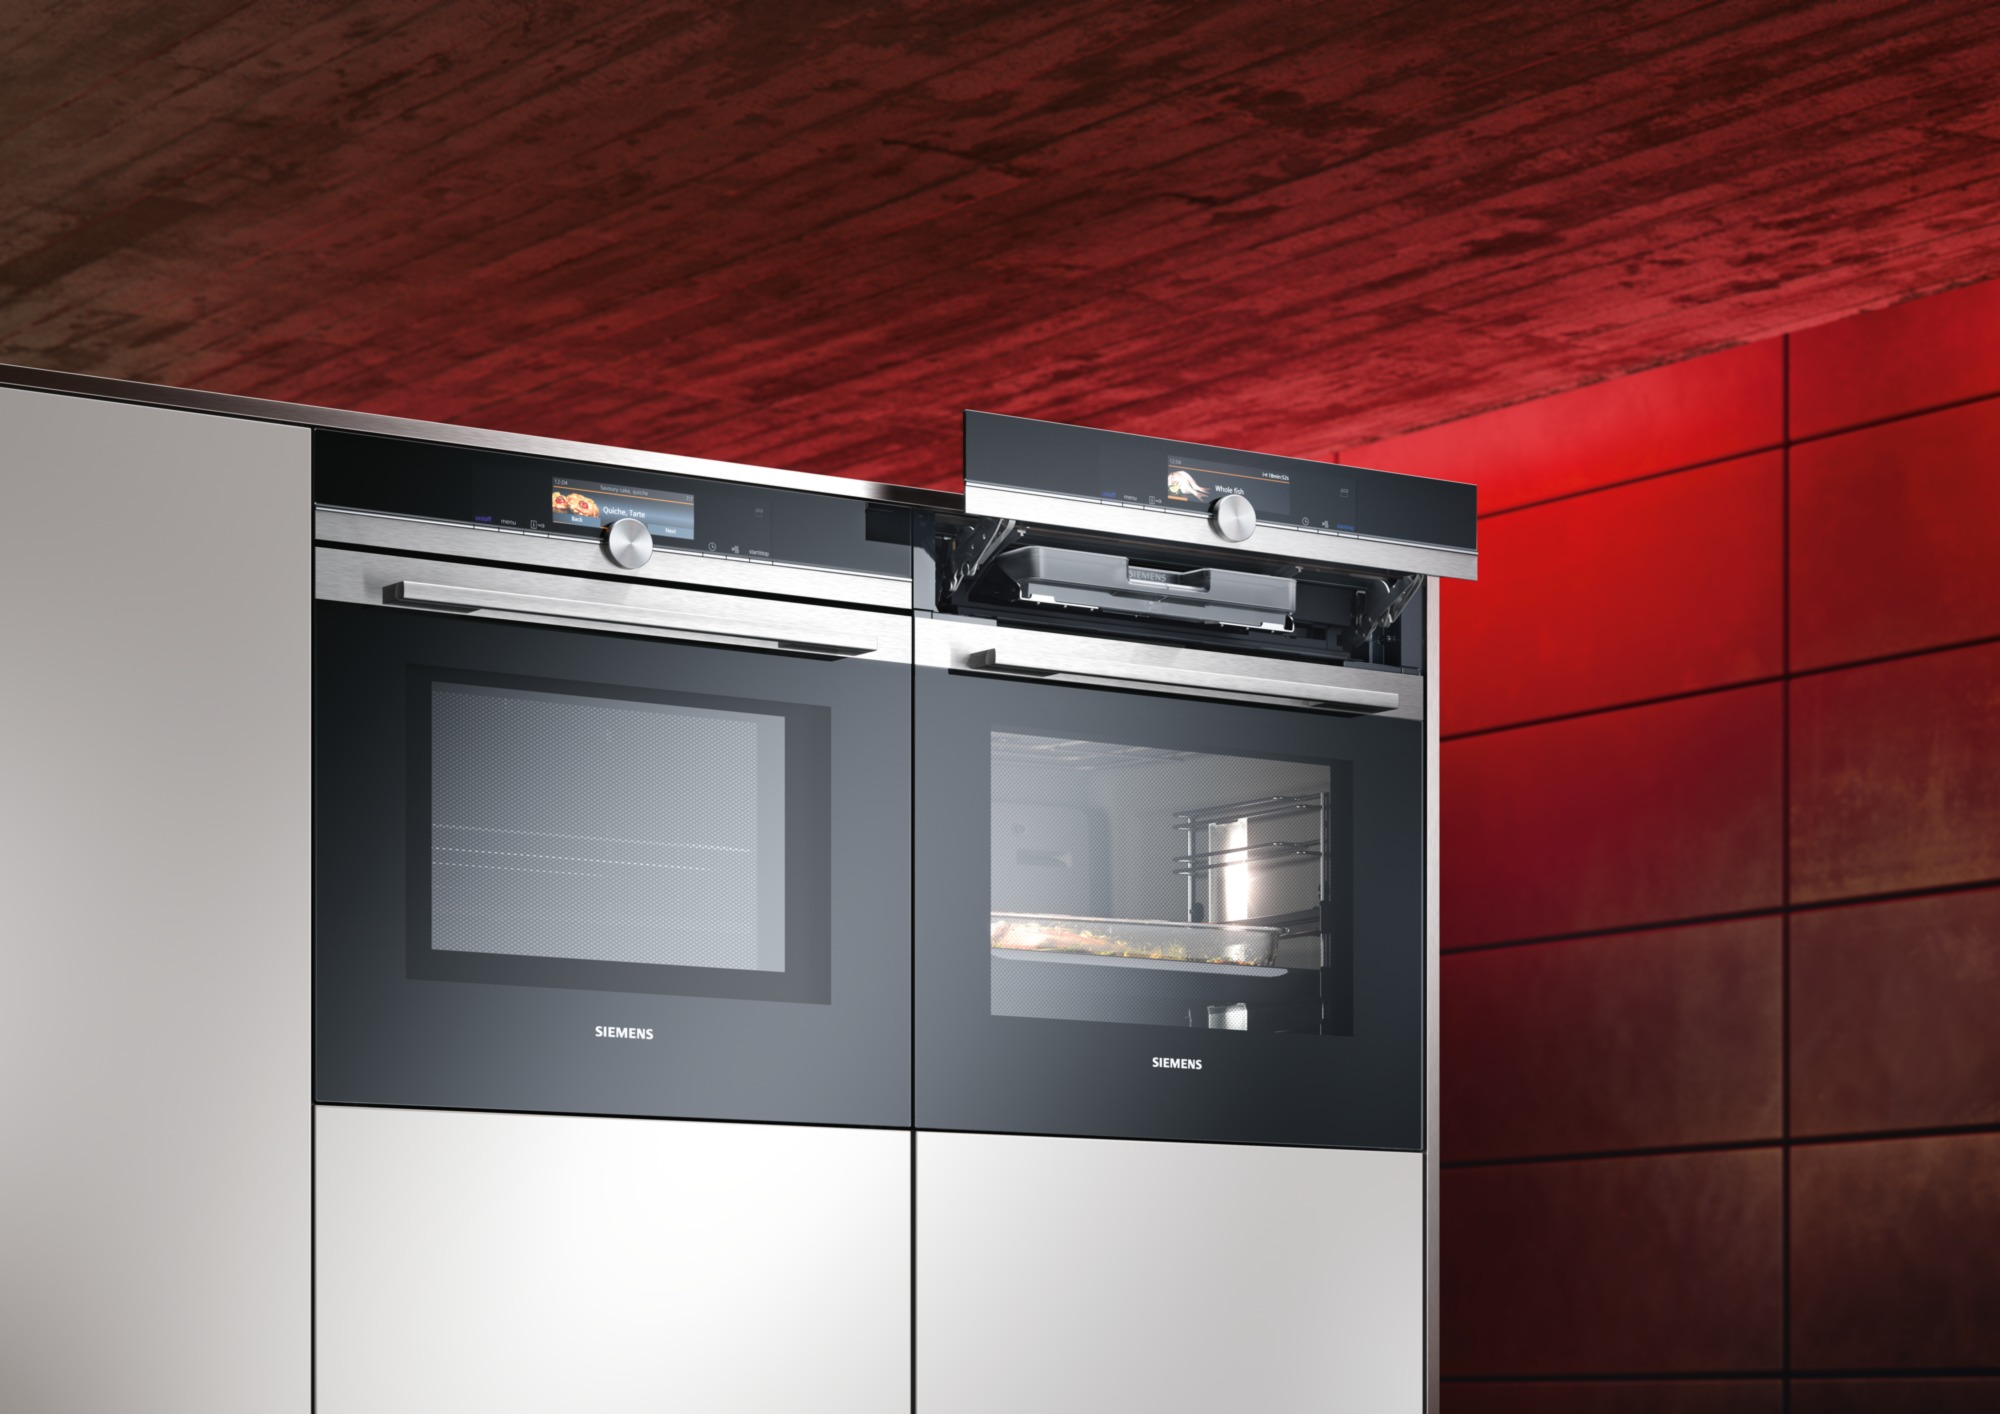 bosch kitchen appliances hotel rooms with kitchens essex chelmsford